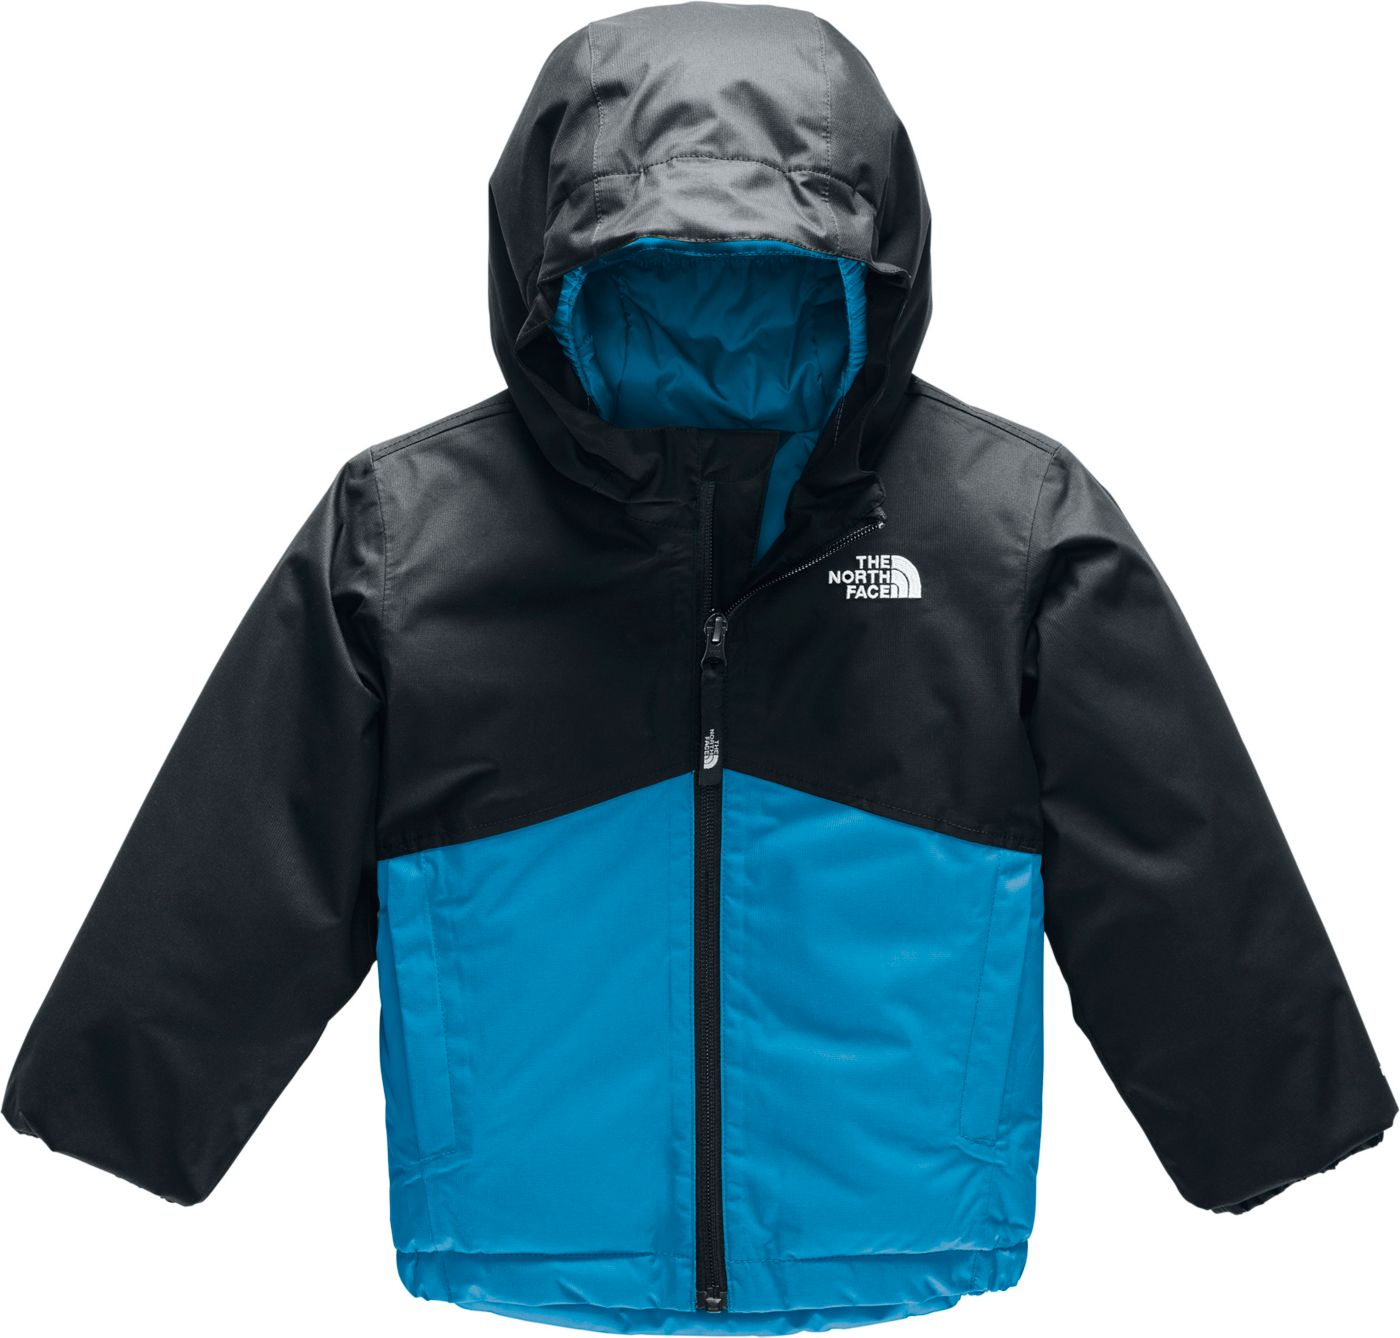 The North Face Toddler Snowqest Insulated Jacket